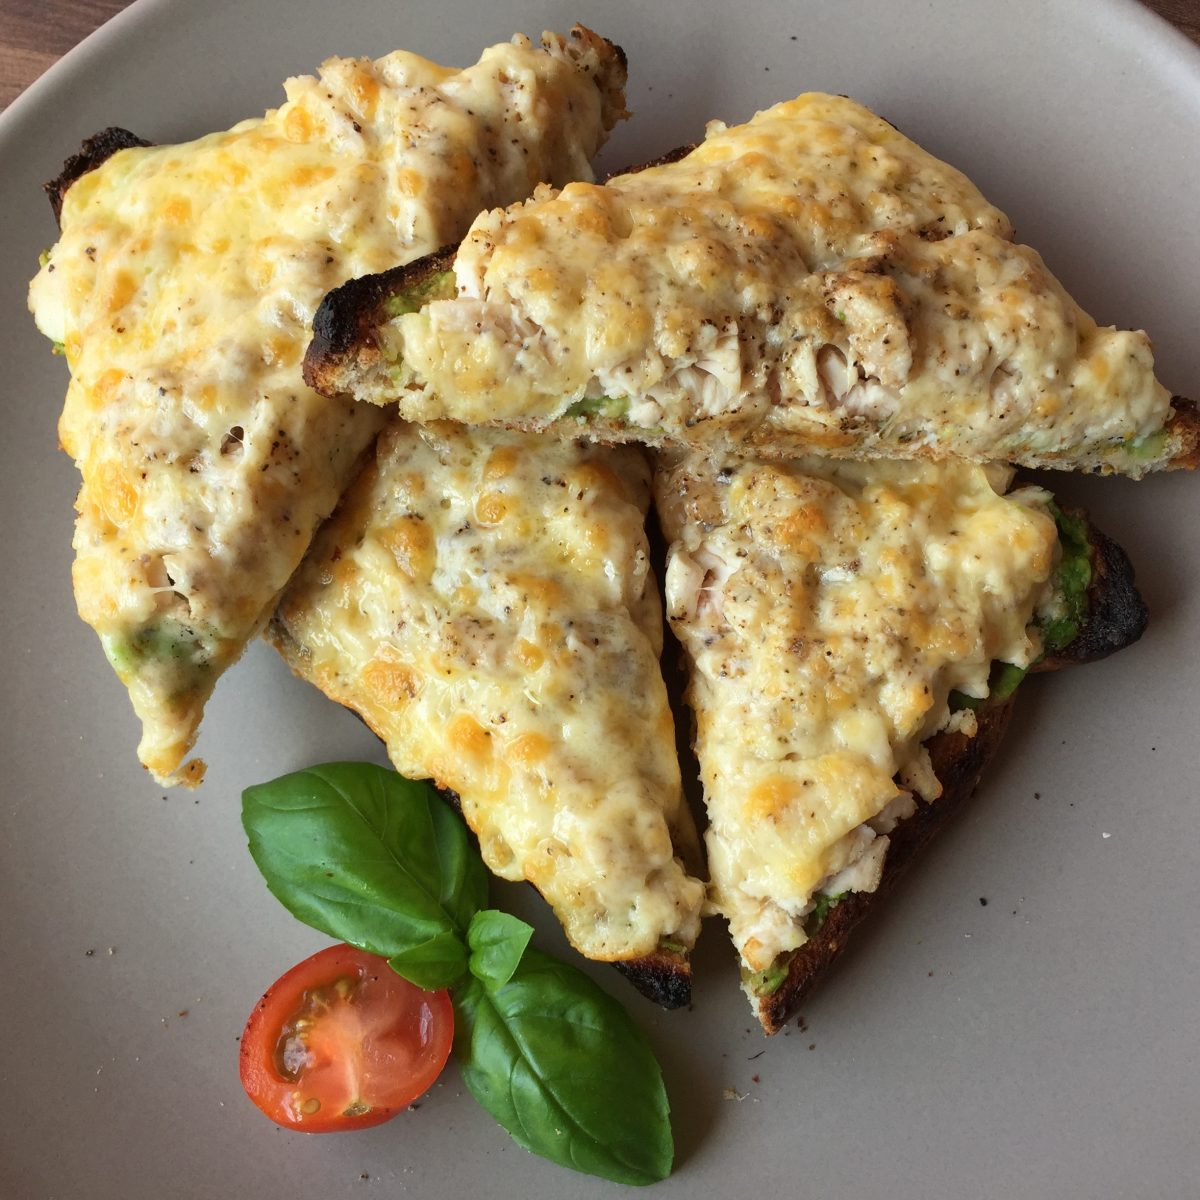 Avocado Chicken and Cheese Melt by cooking meals for one